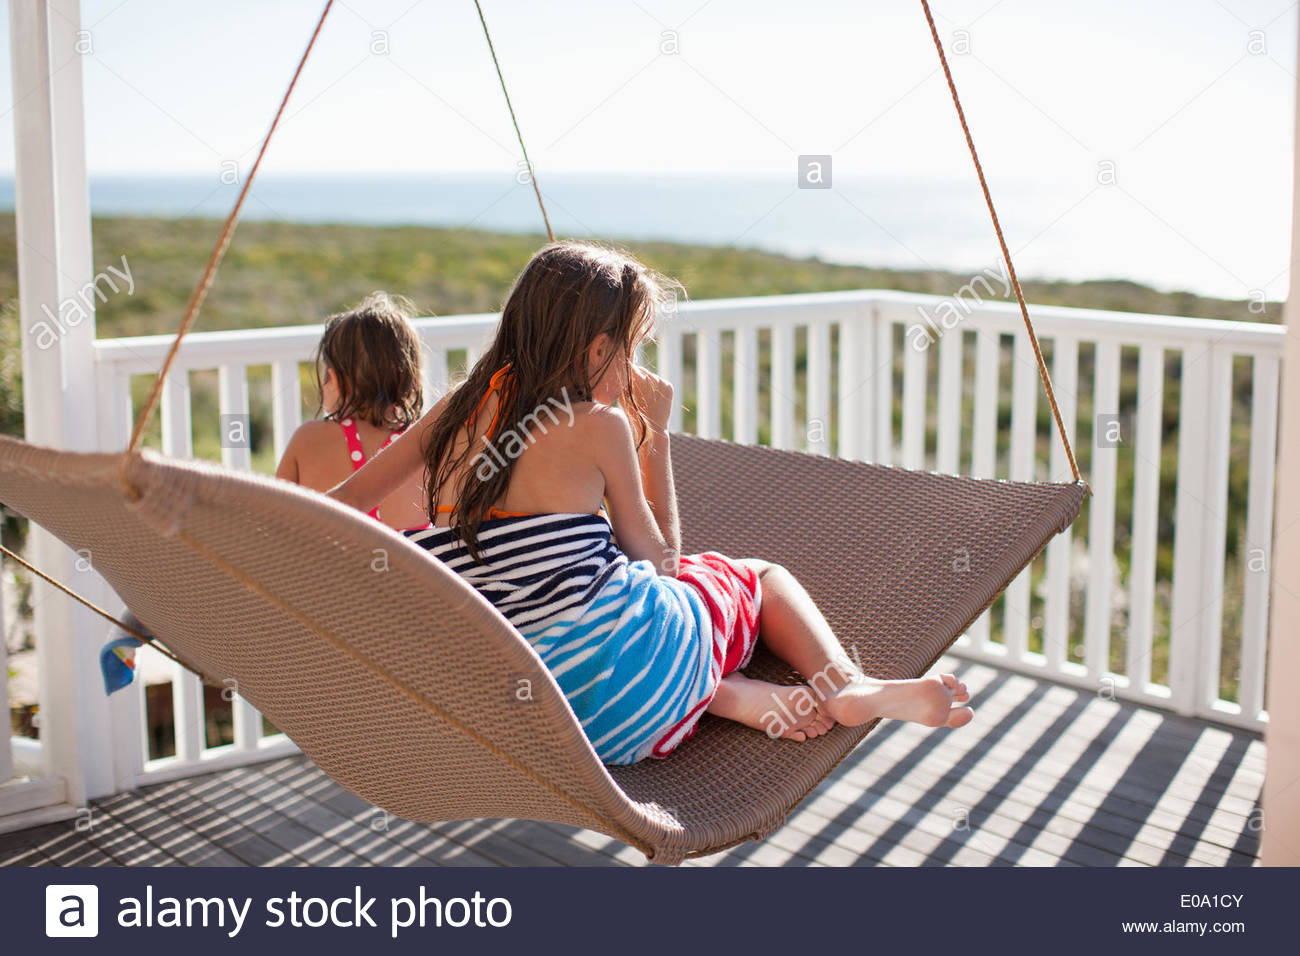 sisters relaxing on lounge chair on deck - Stock Image